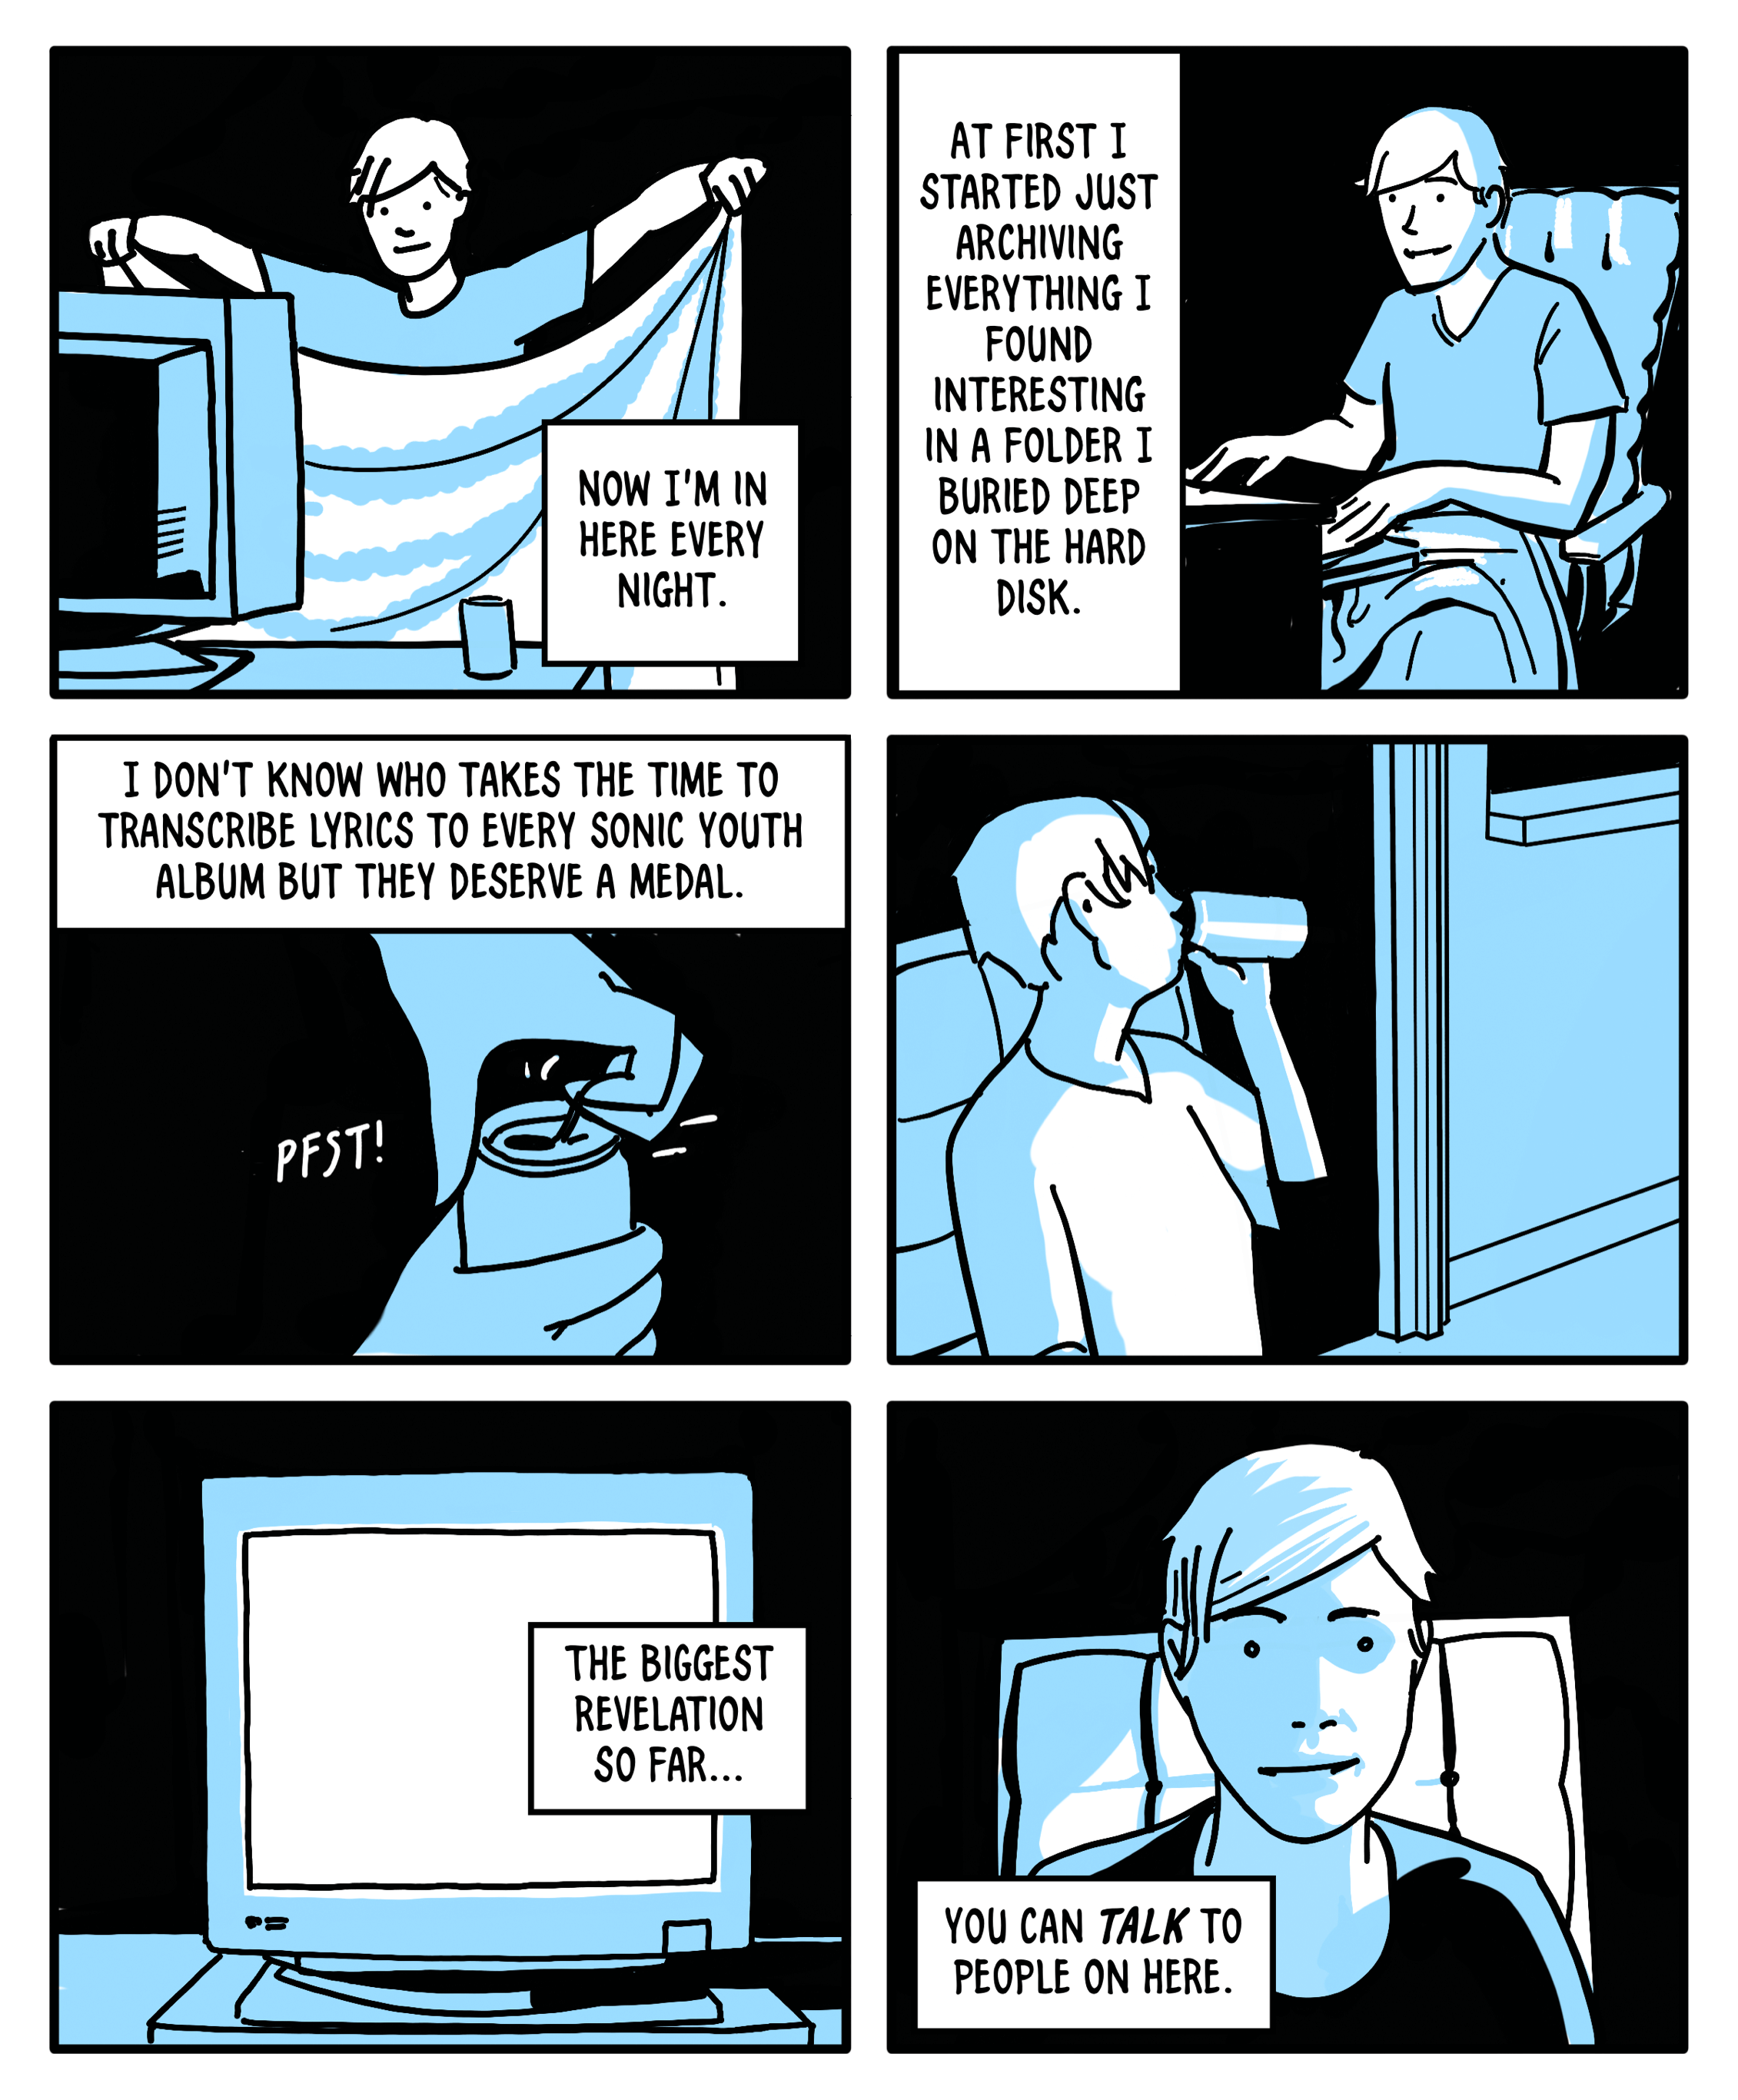 Page-15.png